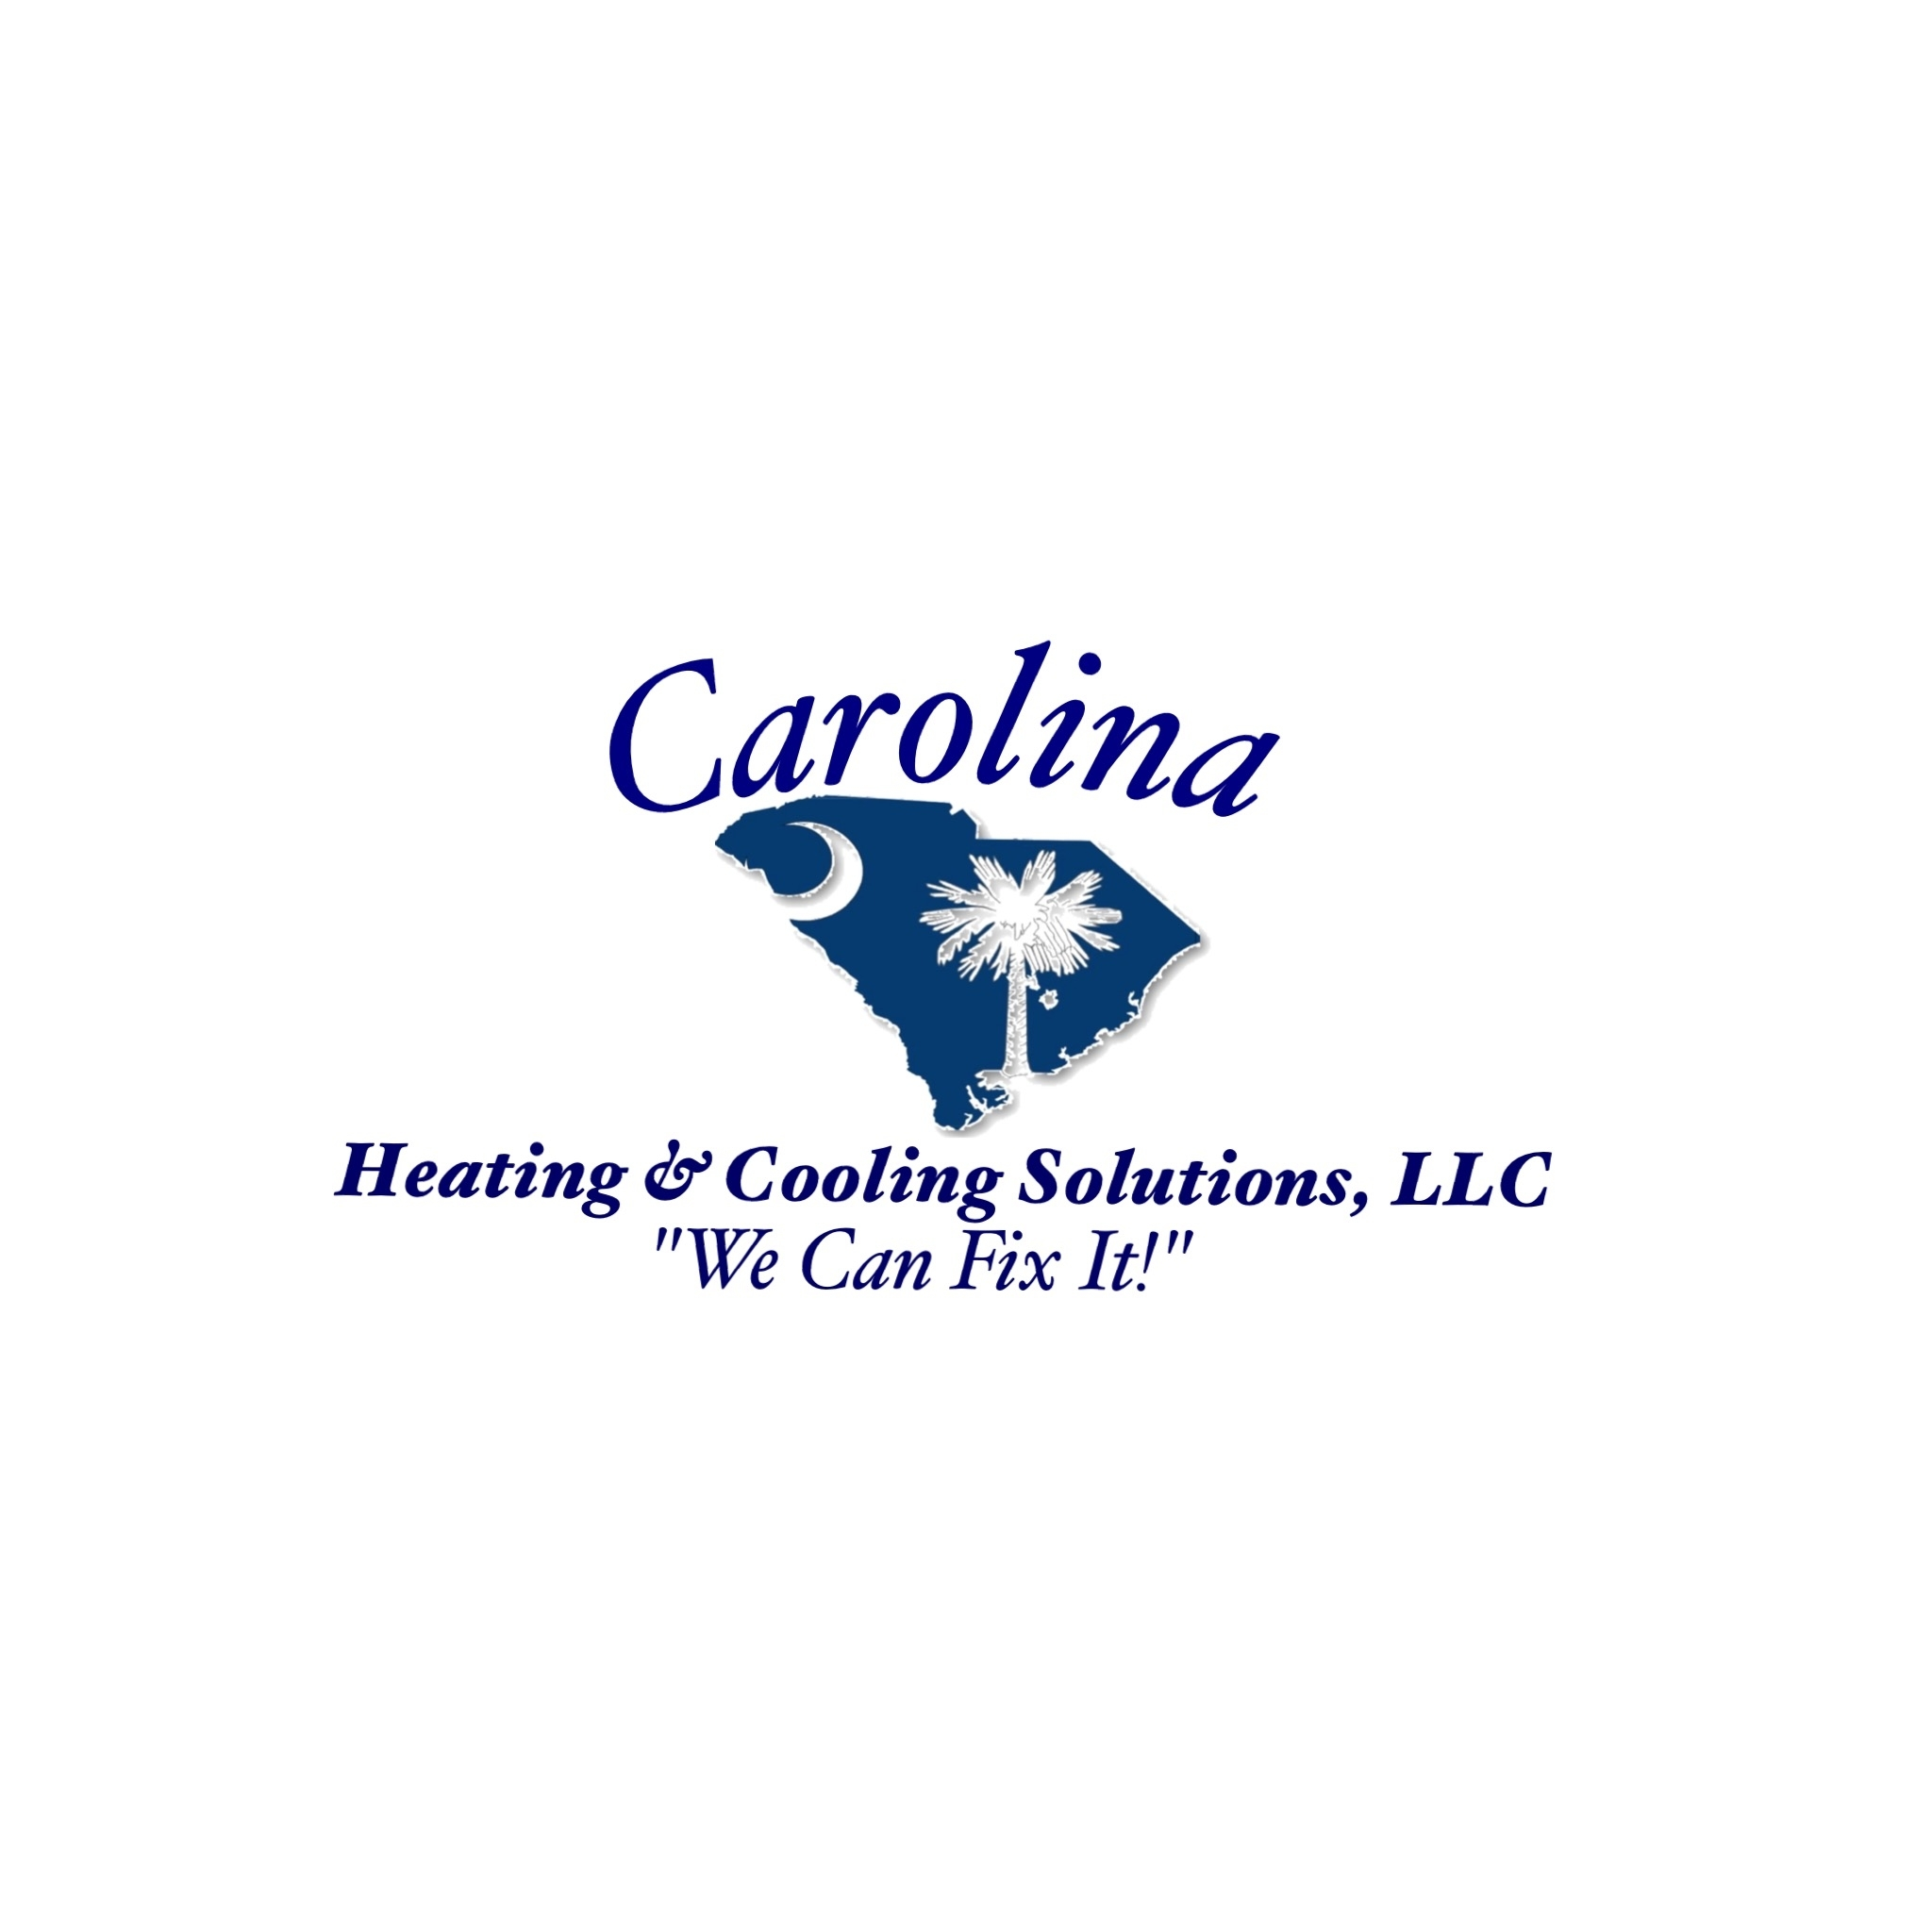 Carolina Heating and Cooling Solutions, LLC